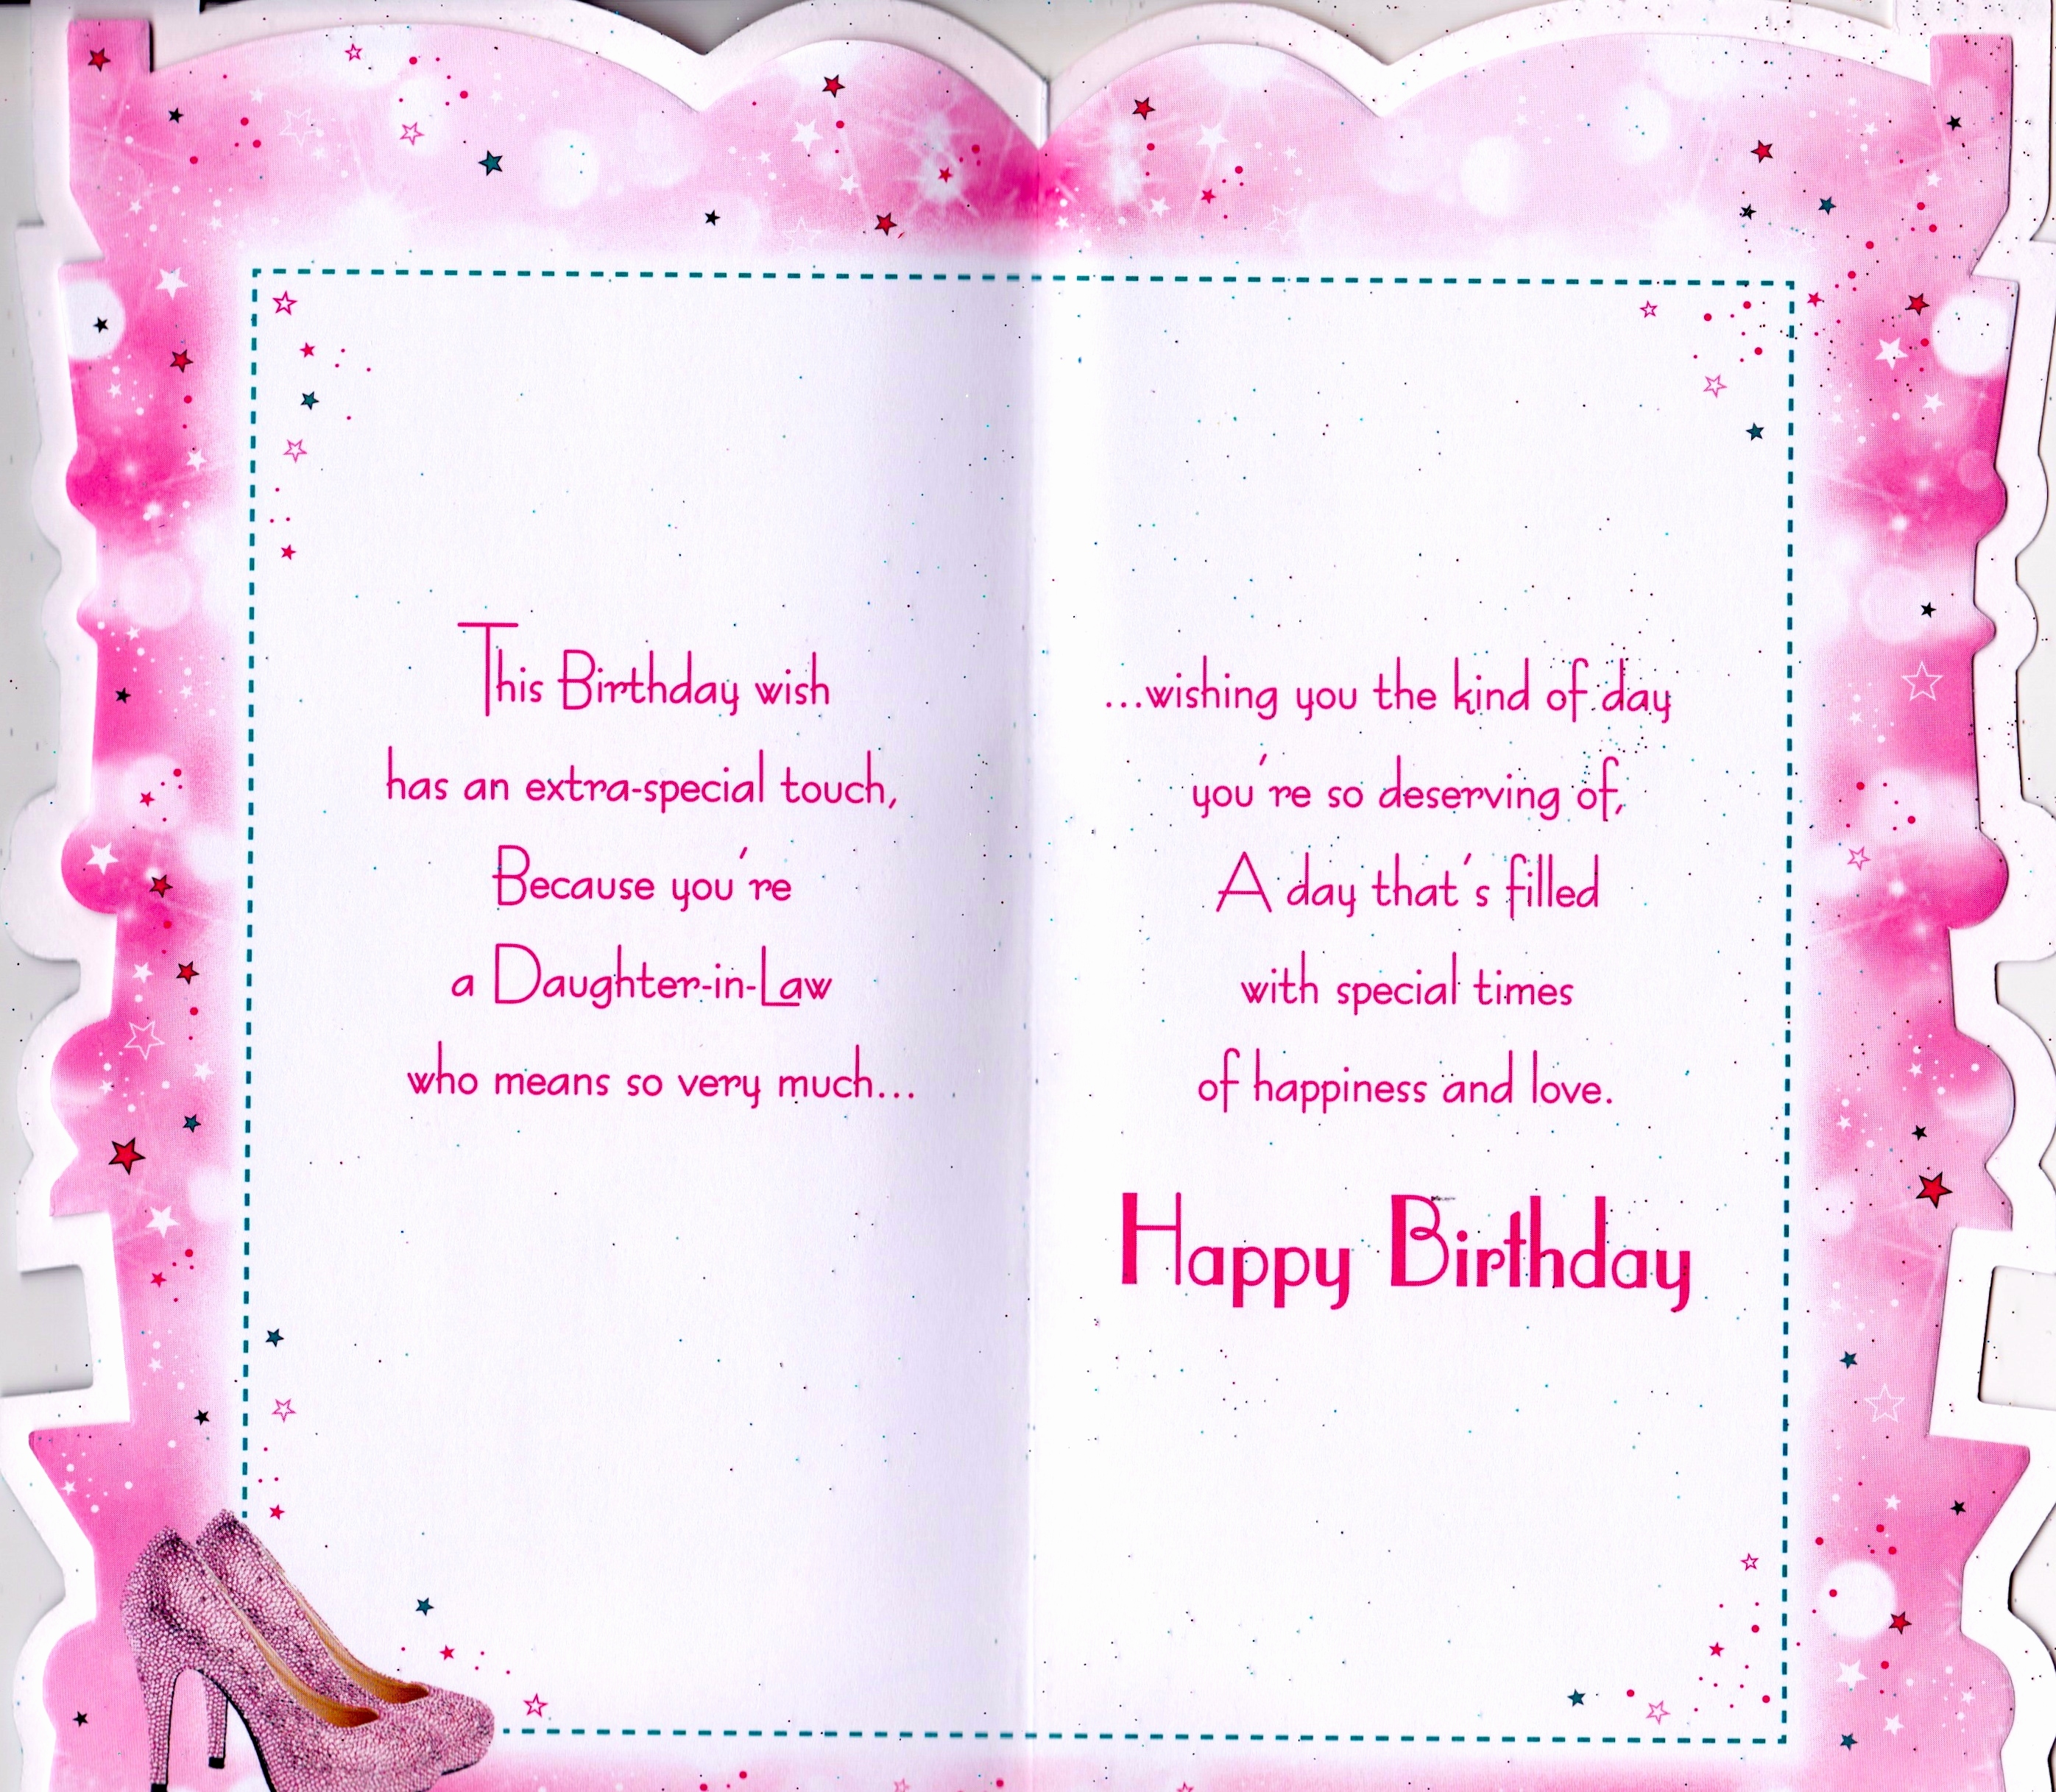 21st birthday card verses for daughter ; birthday-card-poems-for-daughter-inspirational-95-elegant-s-birthday-card-verses-for-daughter-in-law-of-birthday-card-poems-for-daughter